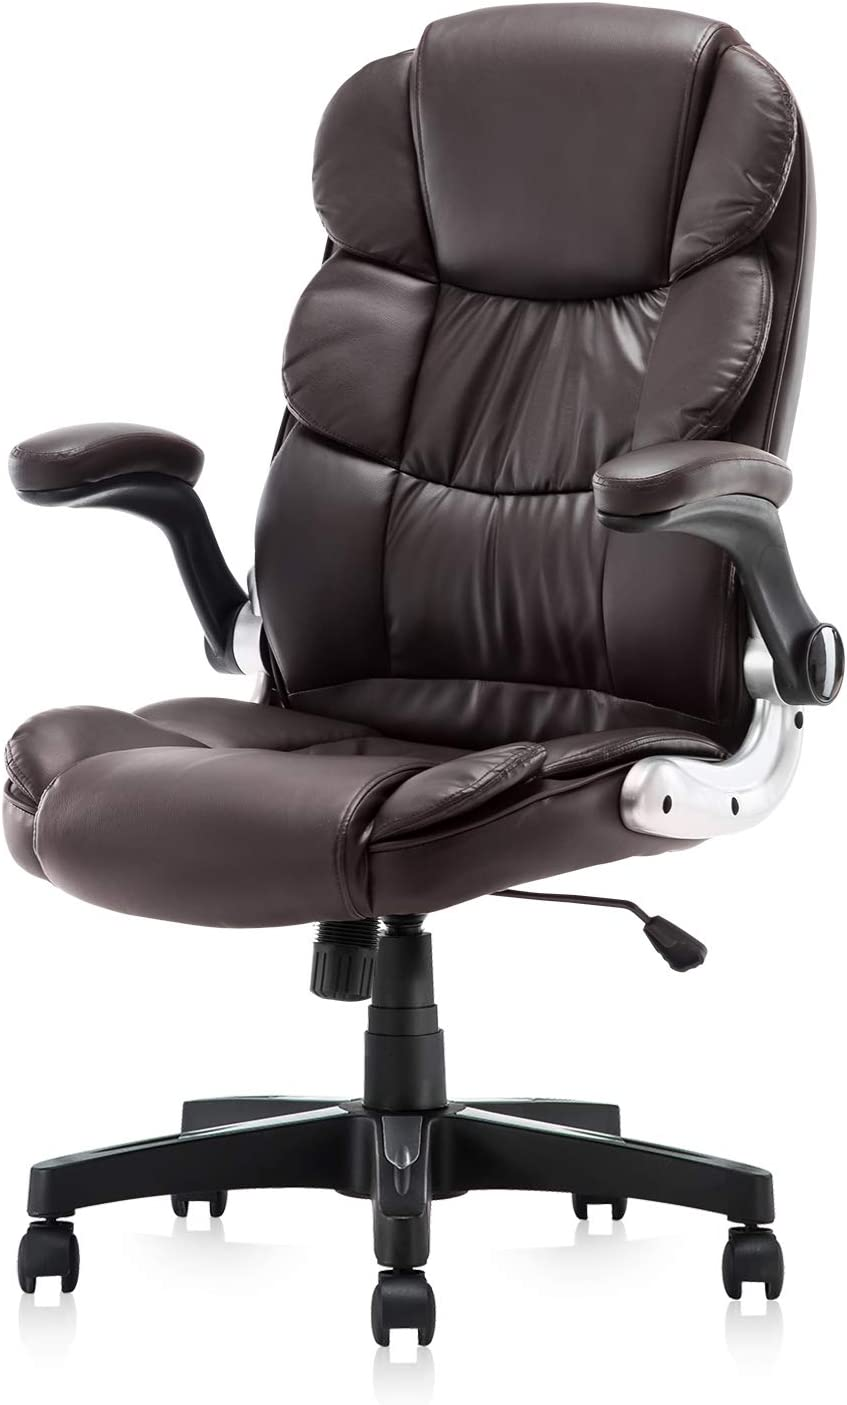 KERMS High Back Office Chair PU Leather Executive Desk Chair with Padded Armrests,Adjustable Ergonomic Swivel Task Chair with Lumbar Support (BN)